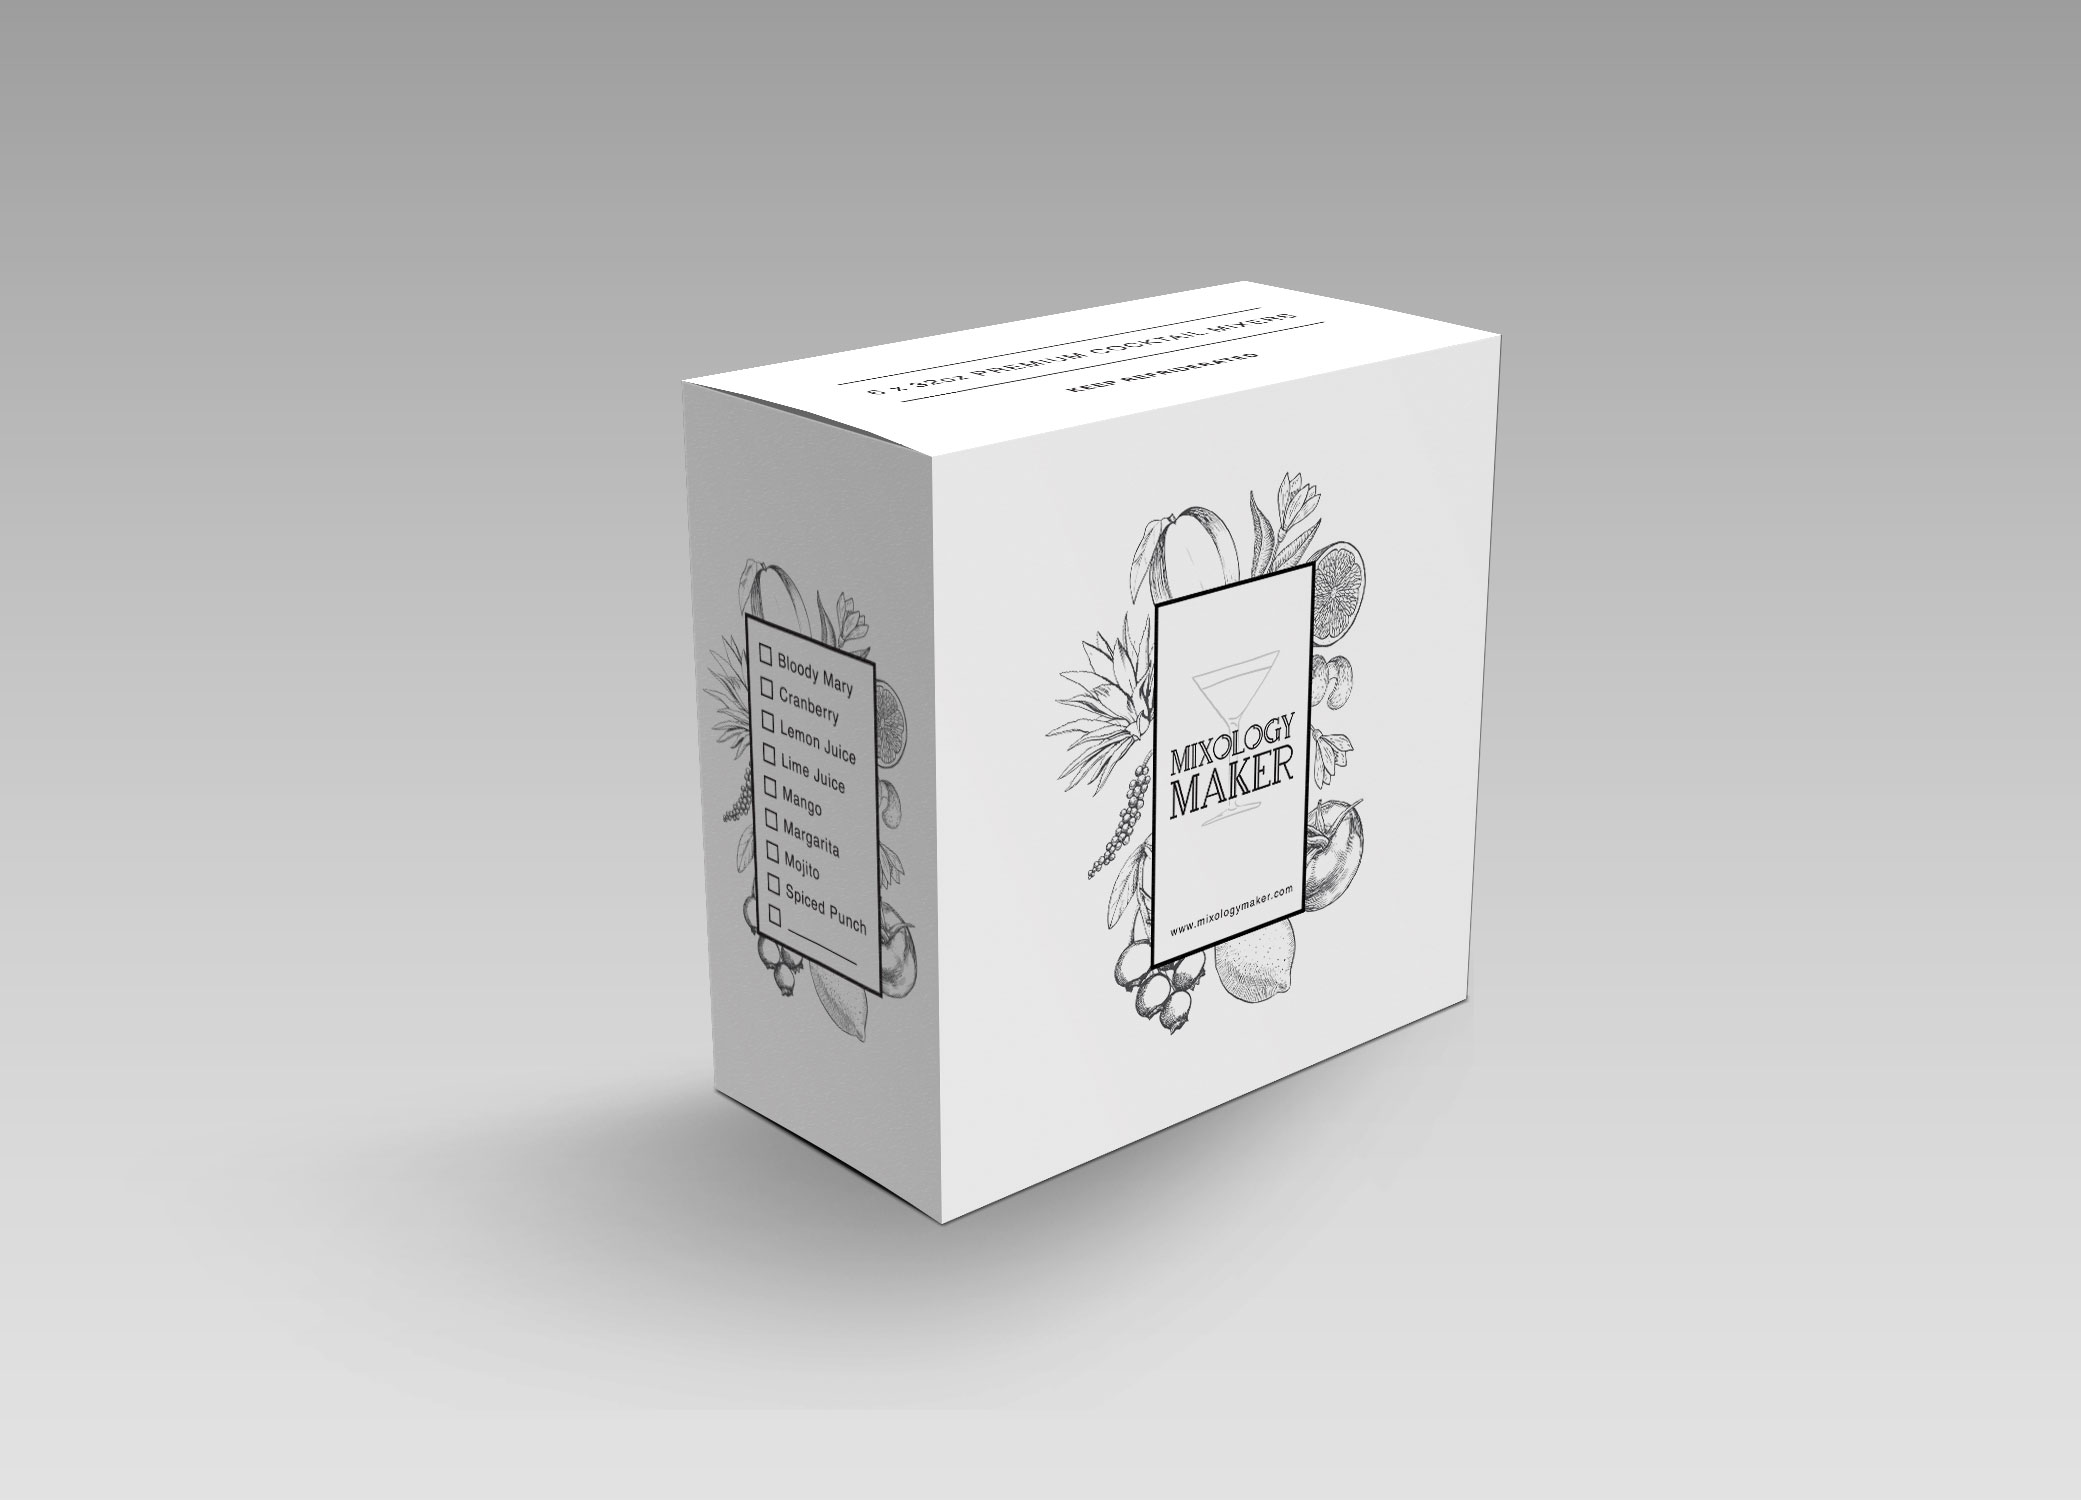 Mixology Maker package box design in black and white with hand drawn fruits on the front and mix flavor list on the side.